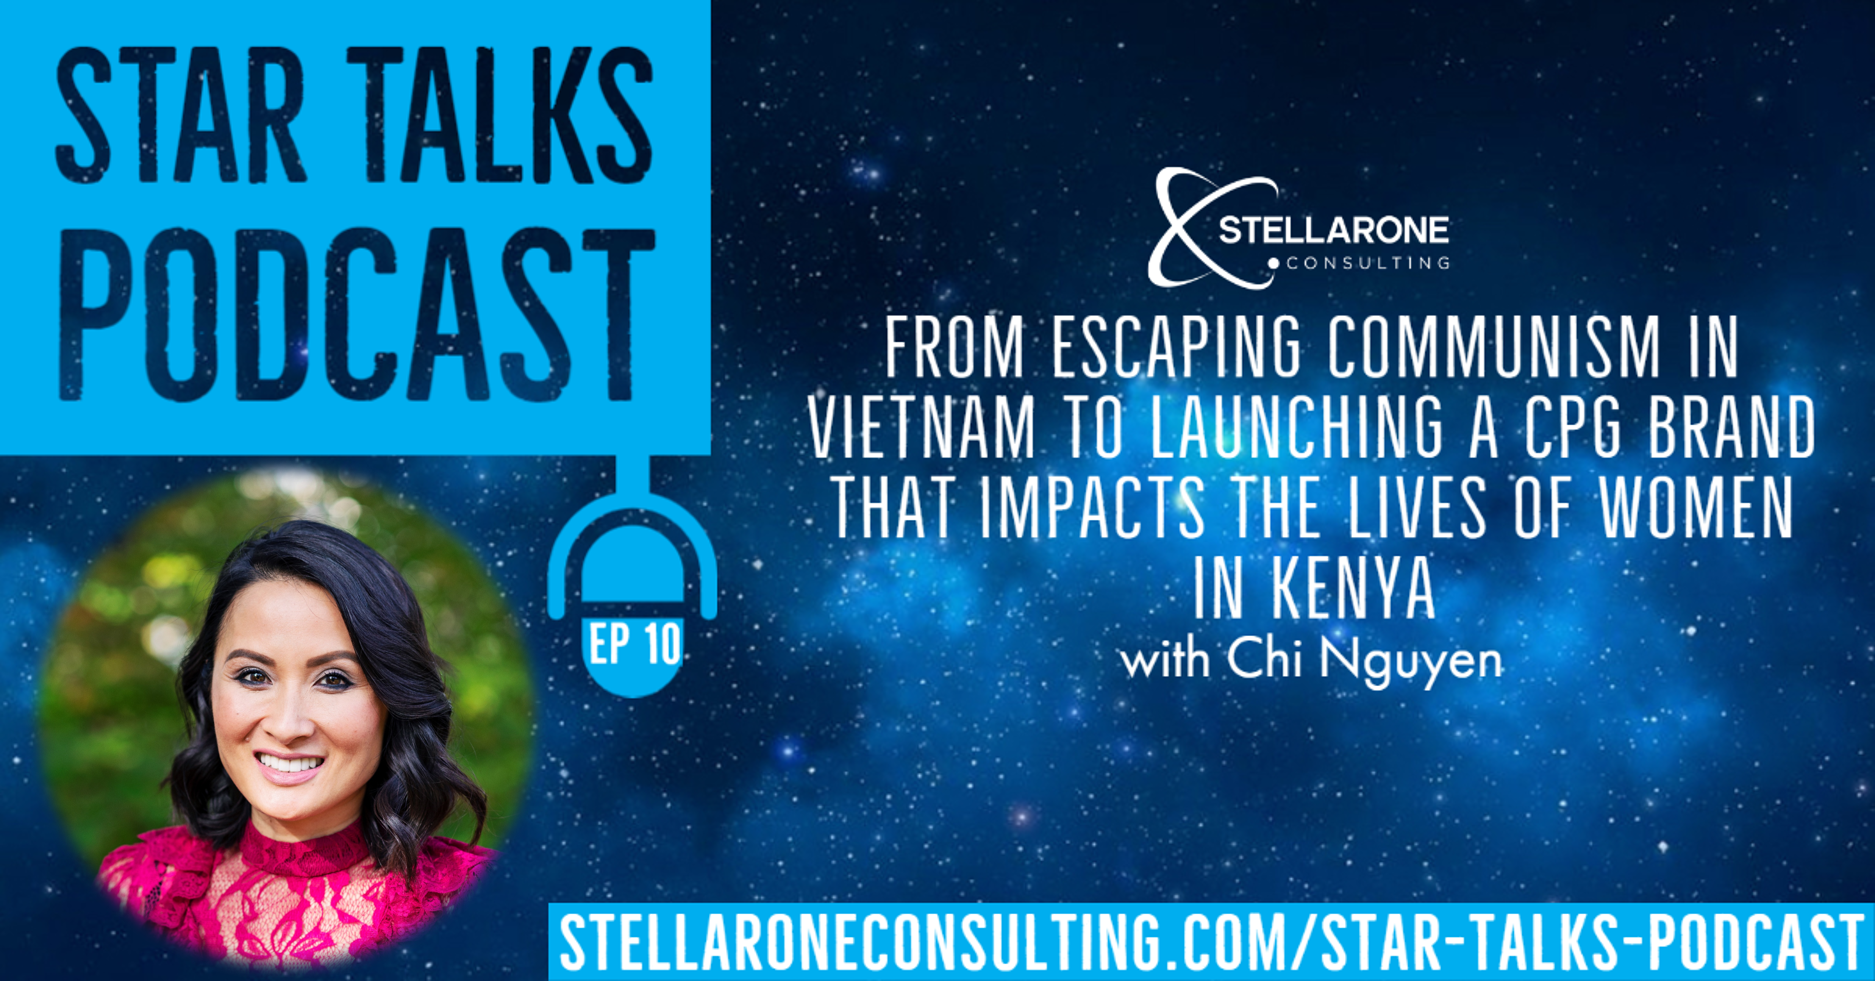 FROM ESCAPING COMMUNISM IN VIETNAM TO LAUNCHING A CPG BRAND THAT IMPACTS THE LIVES OF WOMEN IN KENYA on Star Talks Podcast